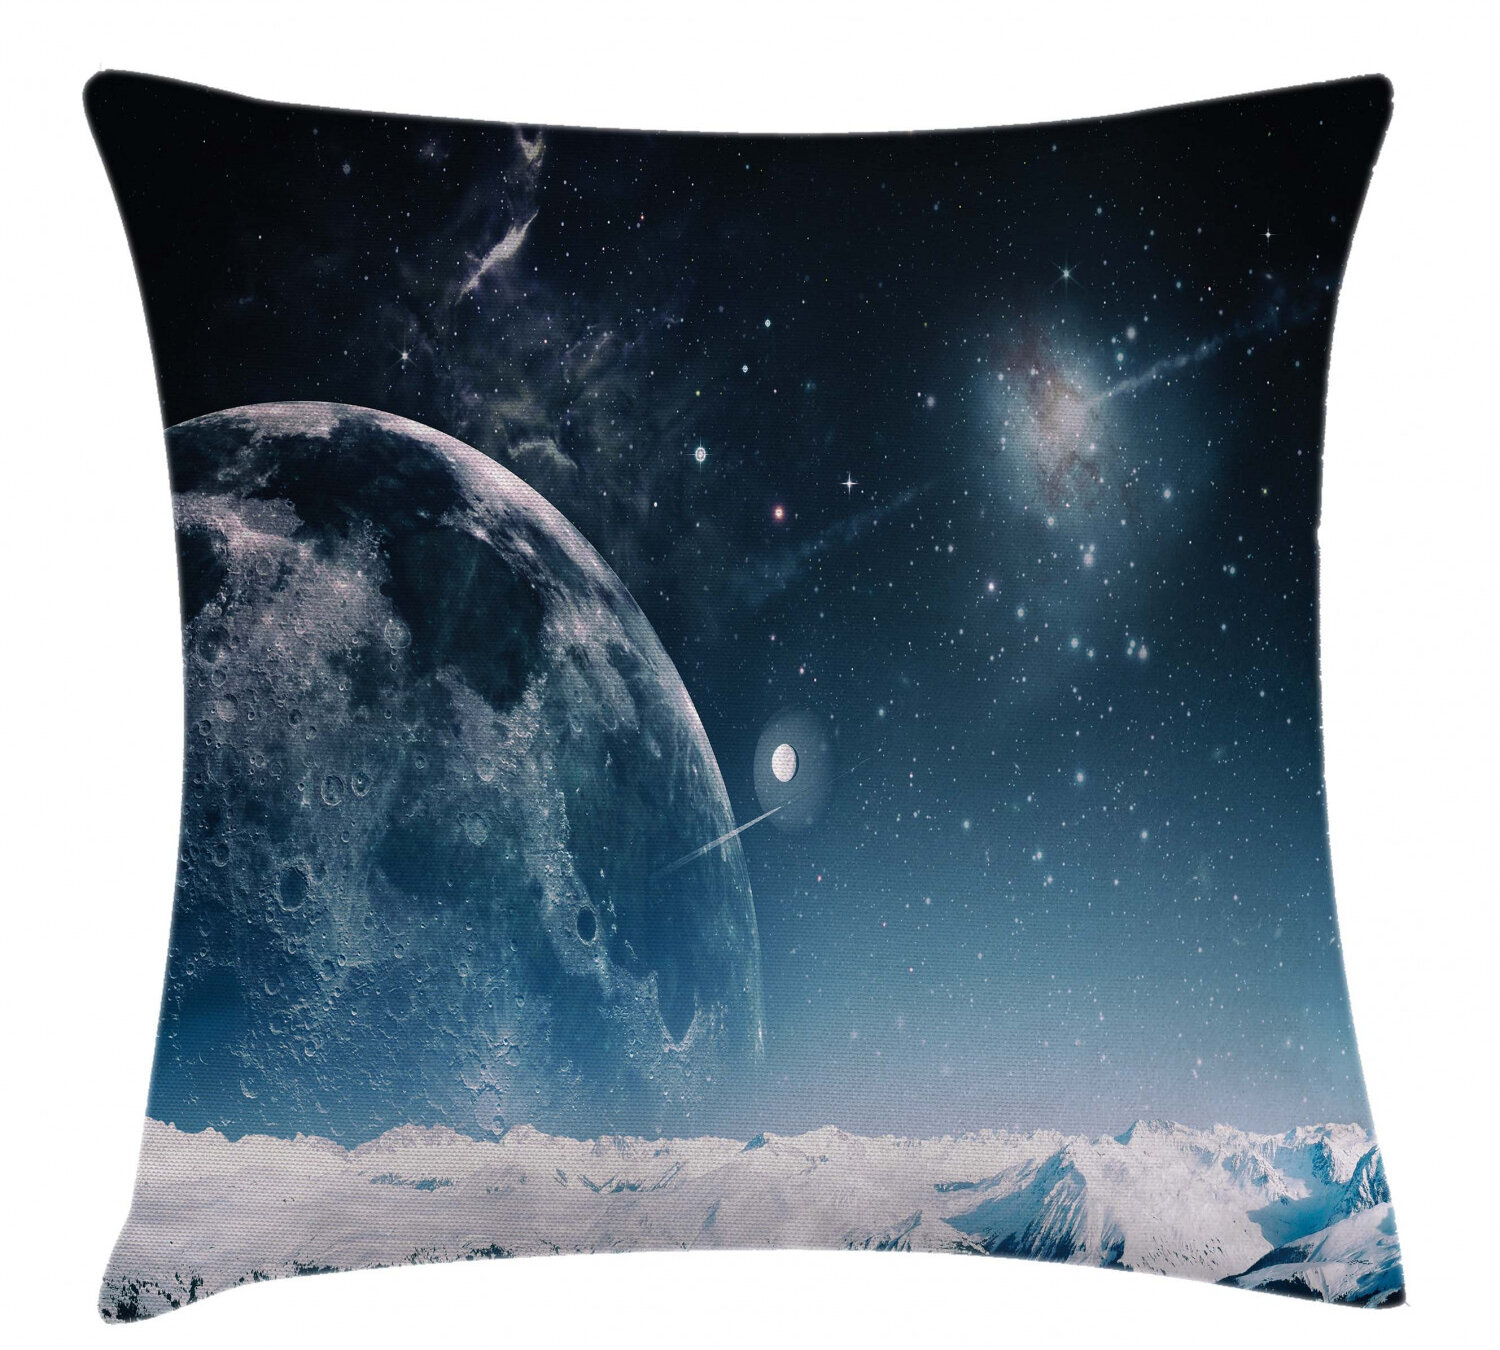 East Urban Home Another World Landscape Atmosphere Crater Galaxy Nebula Outer Space Infinity Indoor Outdoor 26 Throw Pillow Cover Wayfair